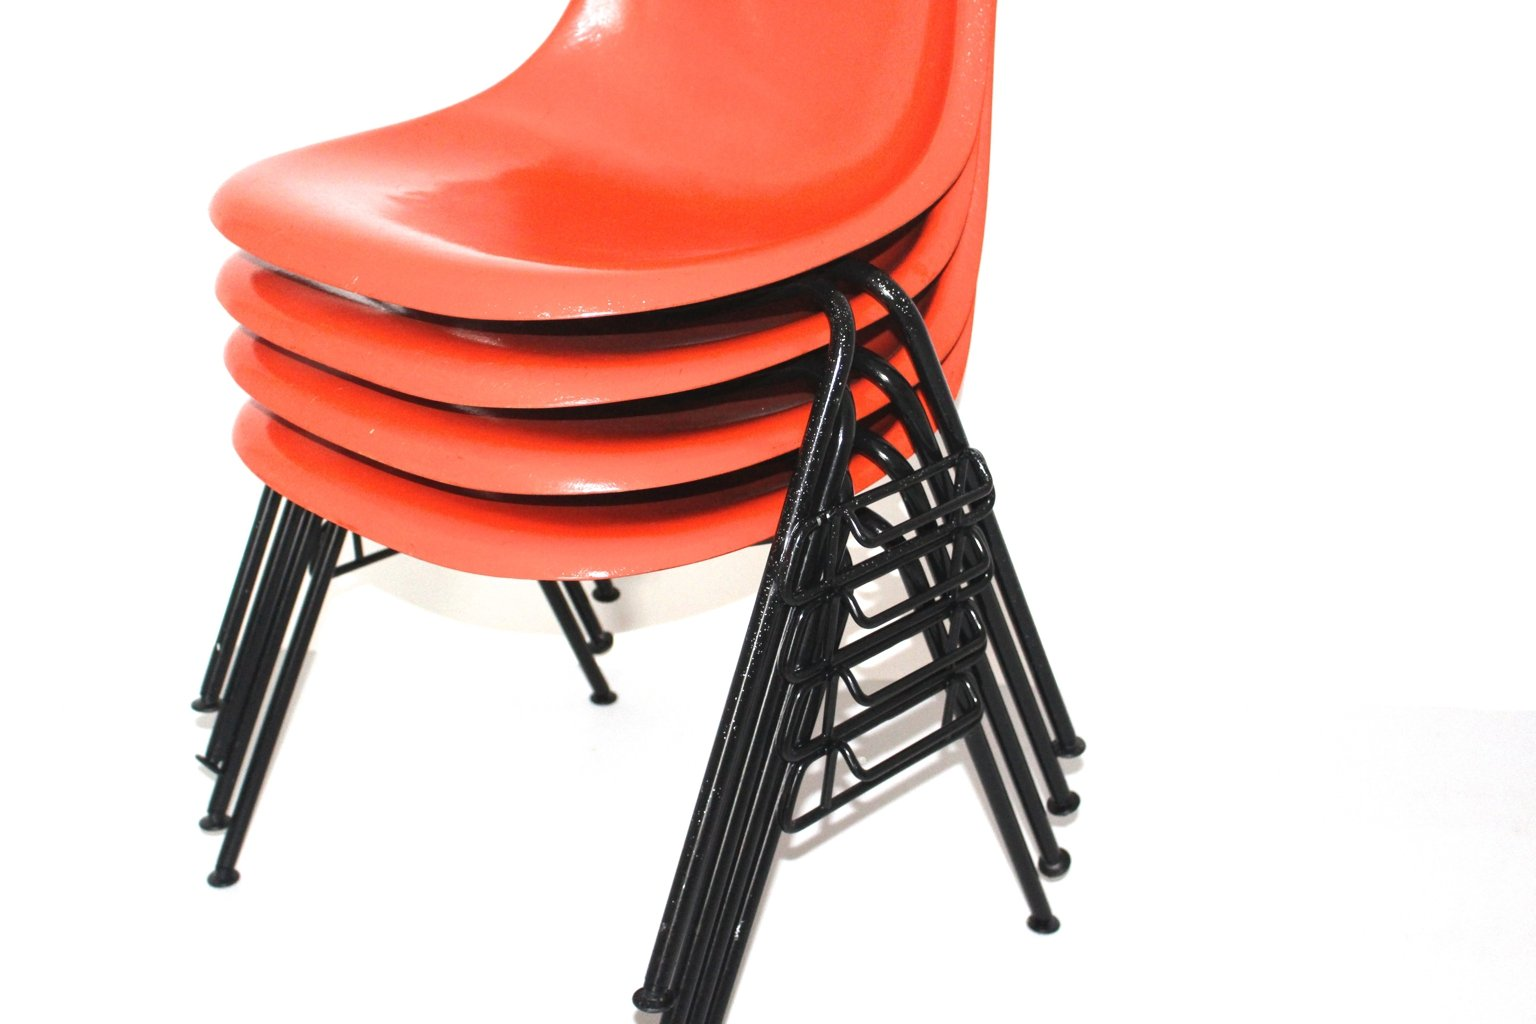 Red DSS-N Side Chairs by Charles & Ray Eames for Herman Miller, 1950s, Set of 4 for sale at Pamono